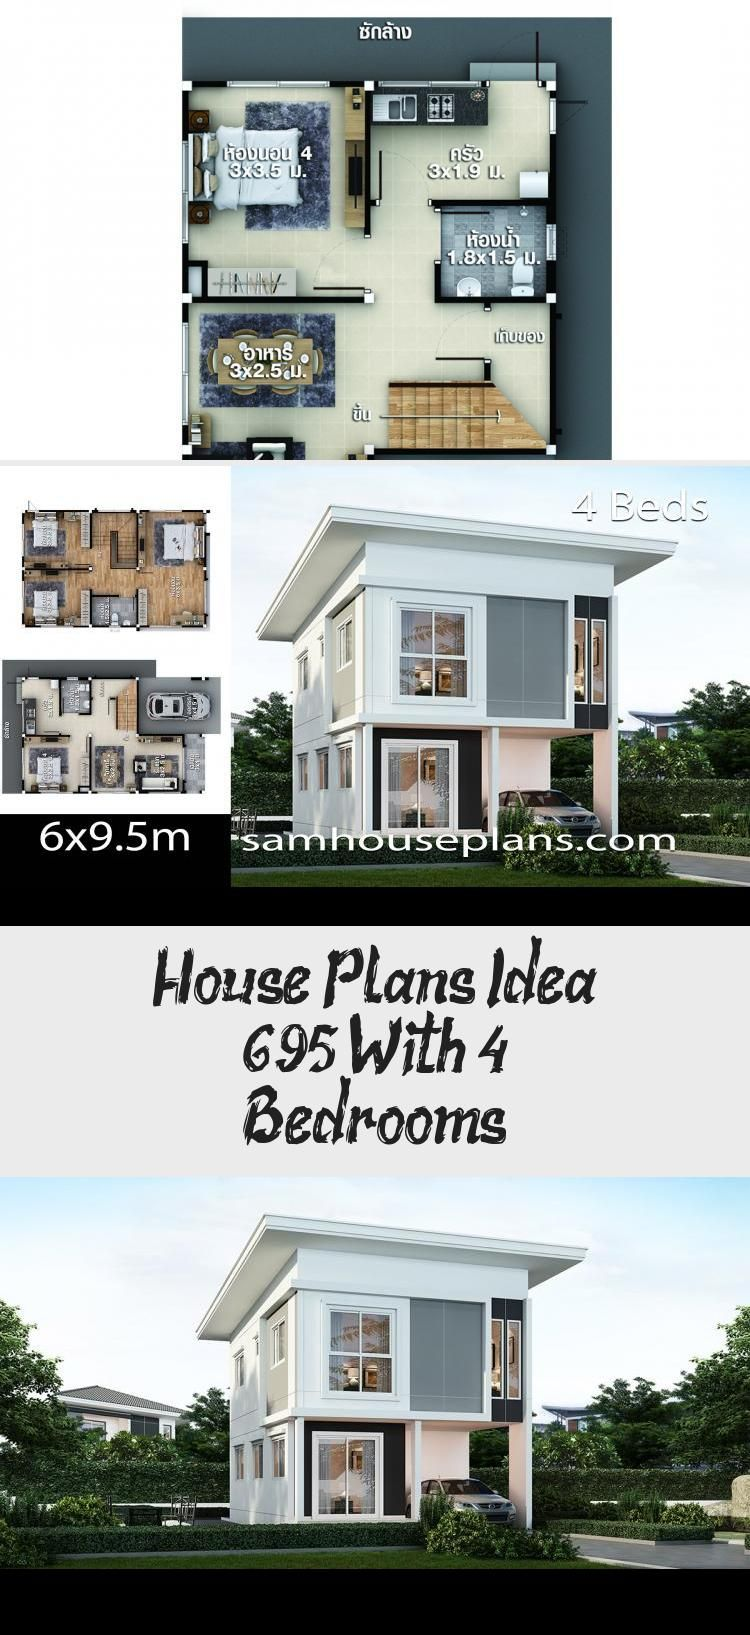 House Plans Idea 6x9 5 With 4 Bedrooms Sam House Plans Uniquehouseplans Houseplansvideos Houseplanscr In 2020 Unique House Plans Craftsman House Plans House Plans